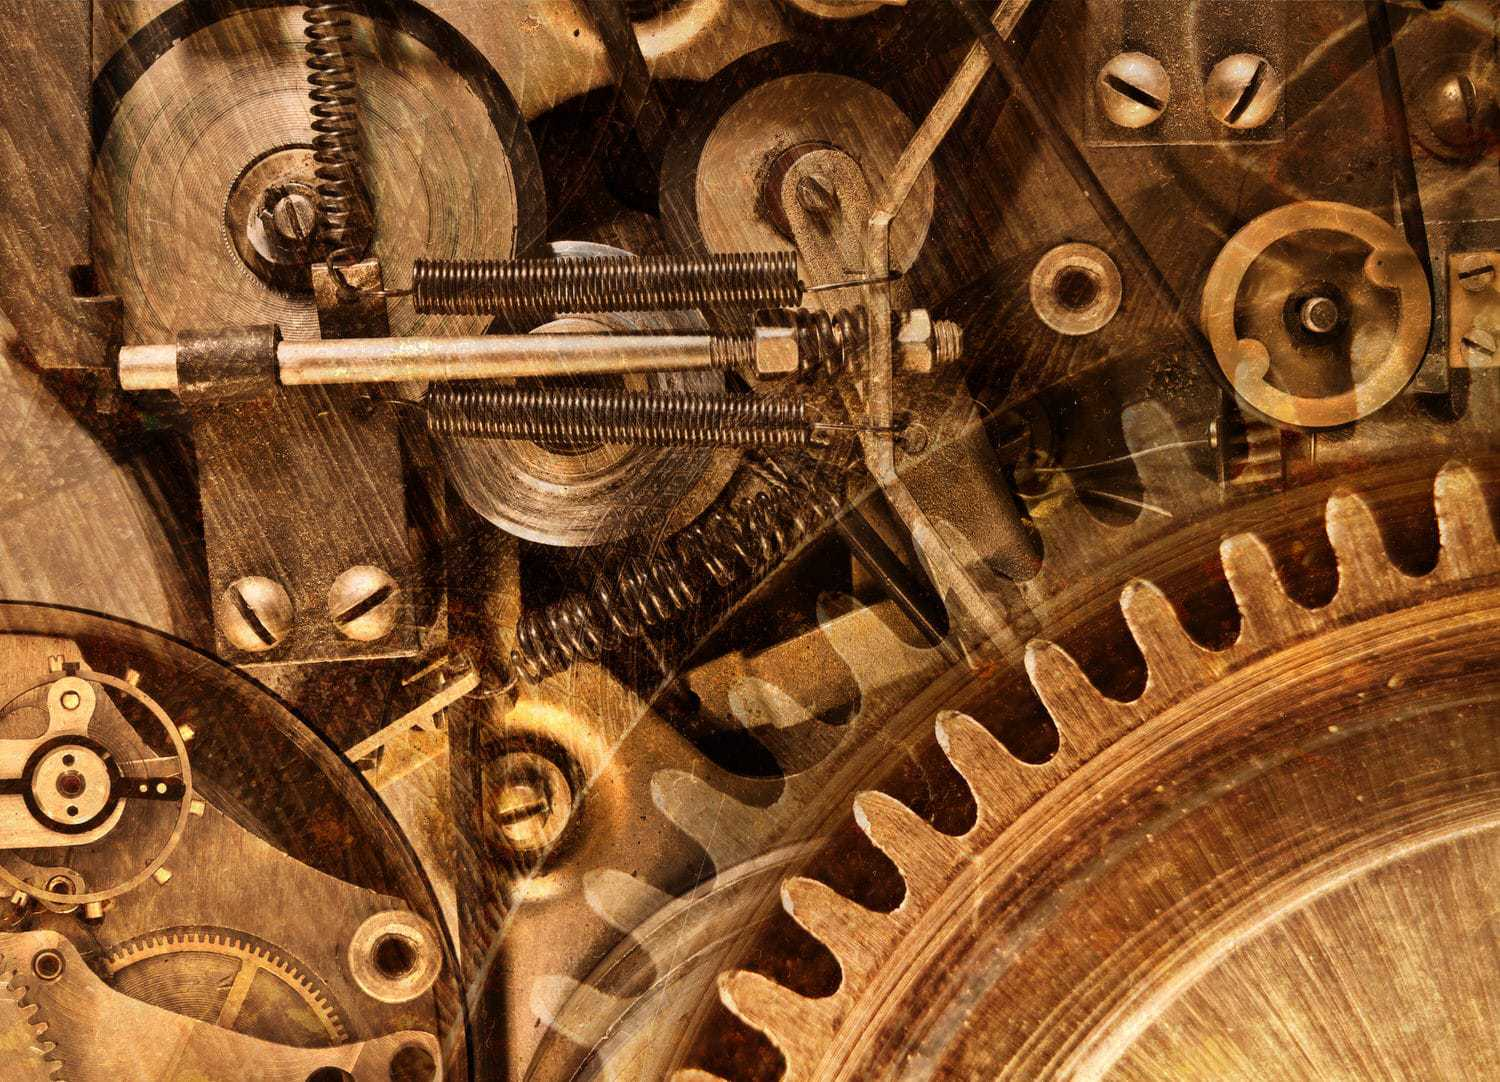 Photo of rustic gears